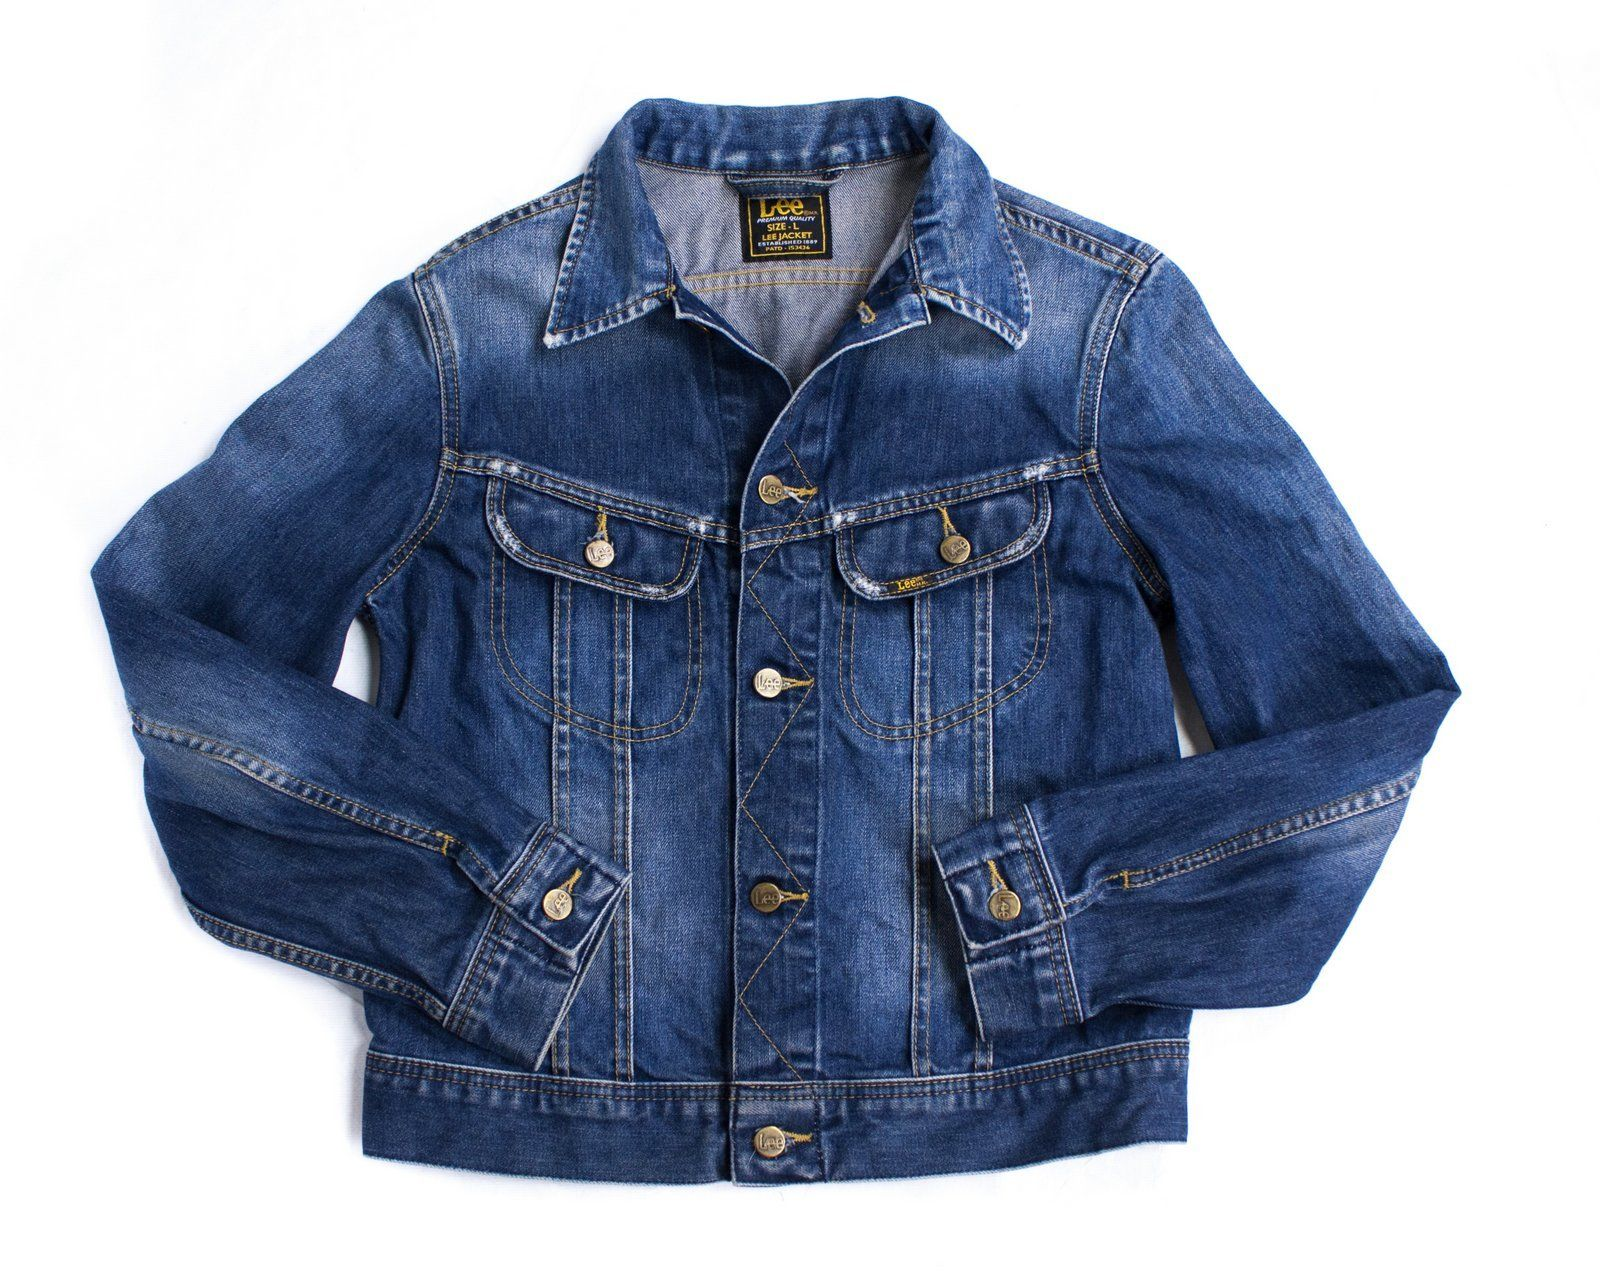 LEE women's Classic Trucker Denim Jacket SIZE L - secondfirst